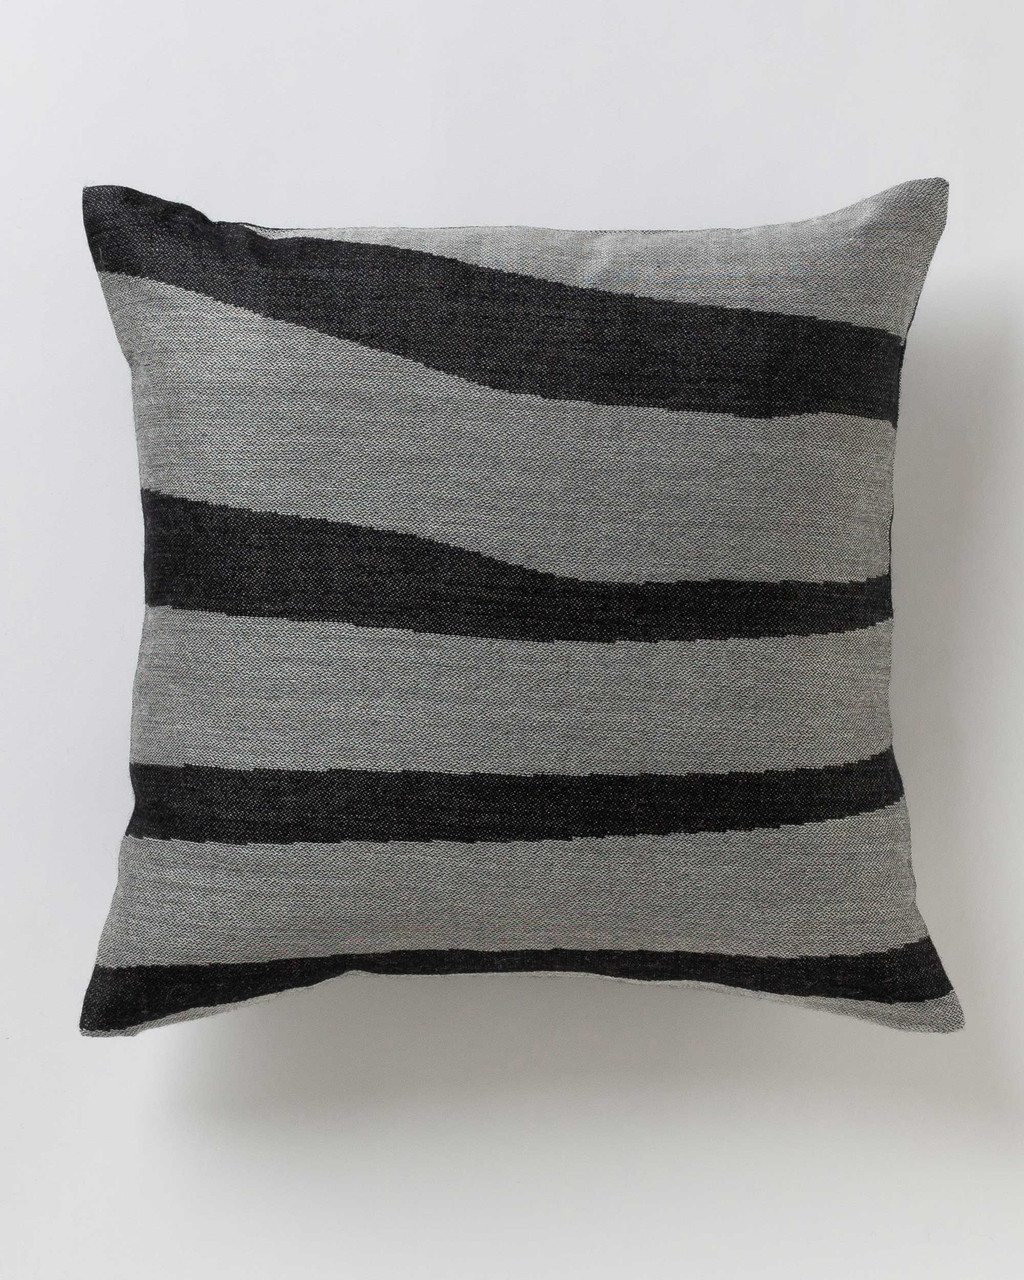 Alicia Adams Alpaca Zigby Pillow, alpaca pillow, alpaca throw pillow, alpaca decorative pillow, alpaca vs cashmere, ivory and black alpaca throw pillow